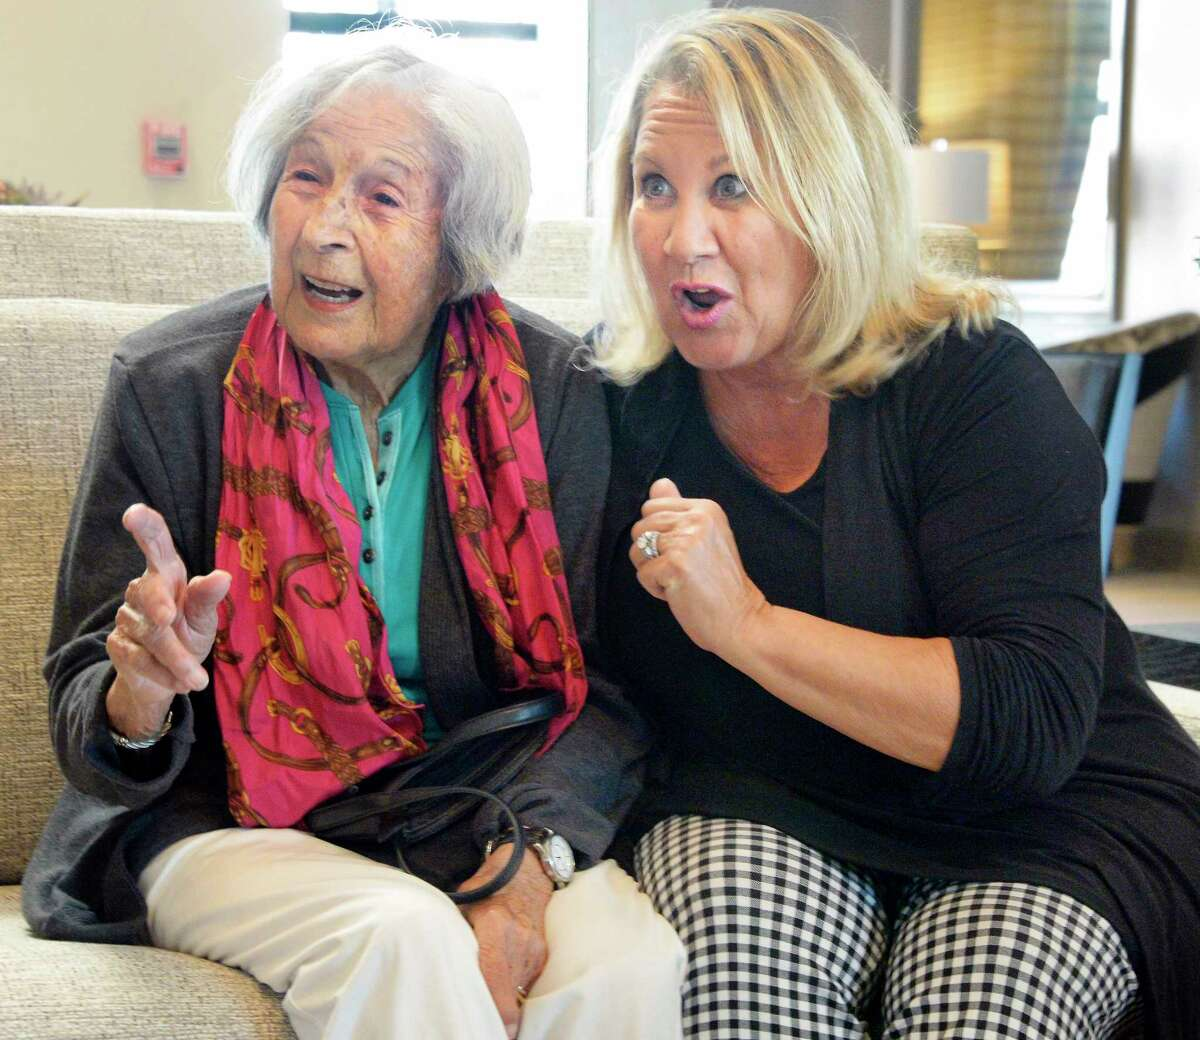 Dona Frank-Federico, left, and her mother Esther Morales during an interview at the Granville Apartments Wednesday July 11, 2018 in Malta, NY. (John Carl D'Annibale/Times Union)